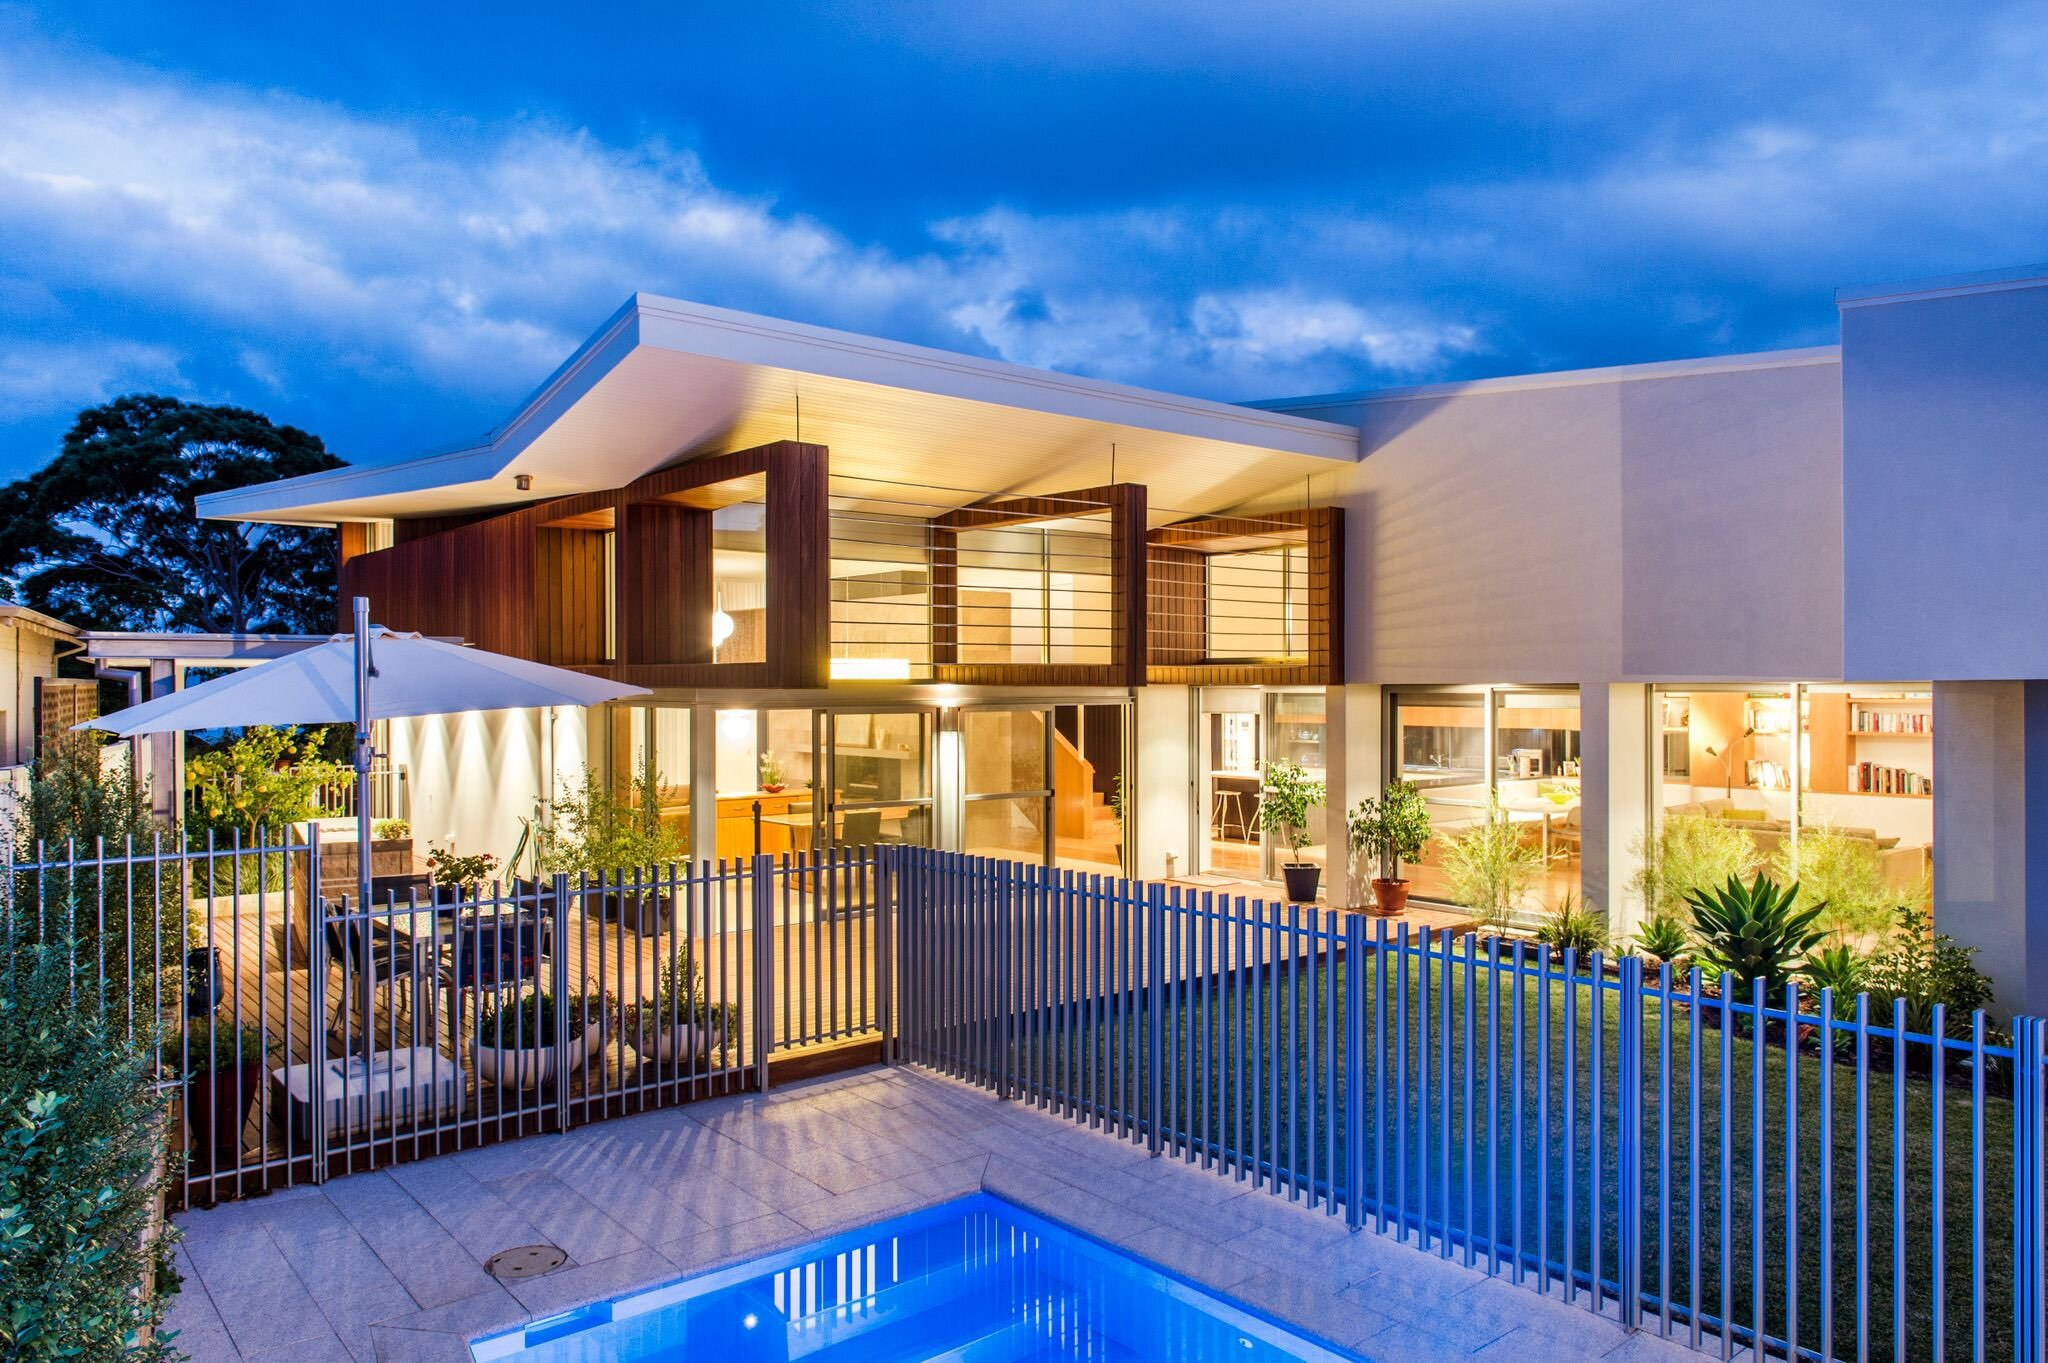 Modern home - moreing rd - mountford architects - pool view night